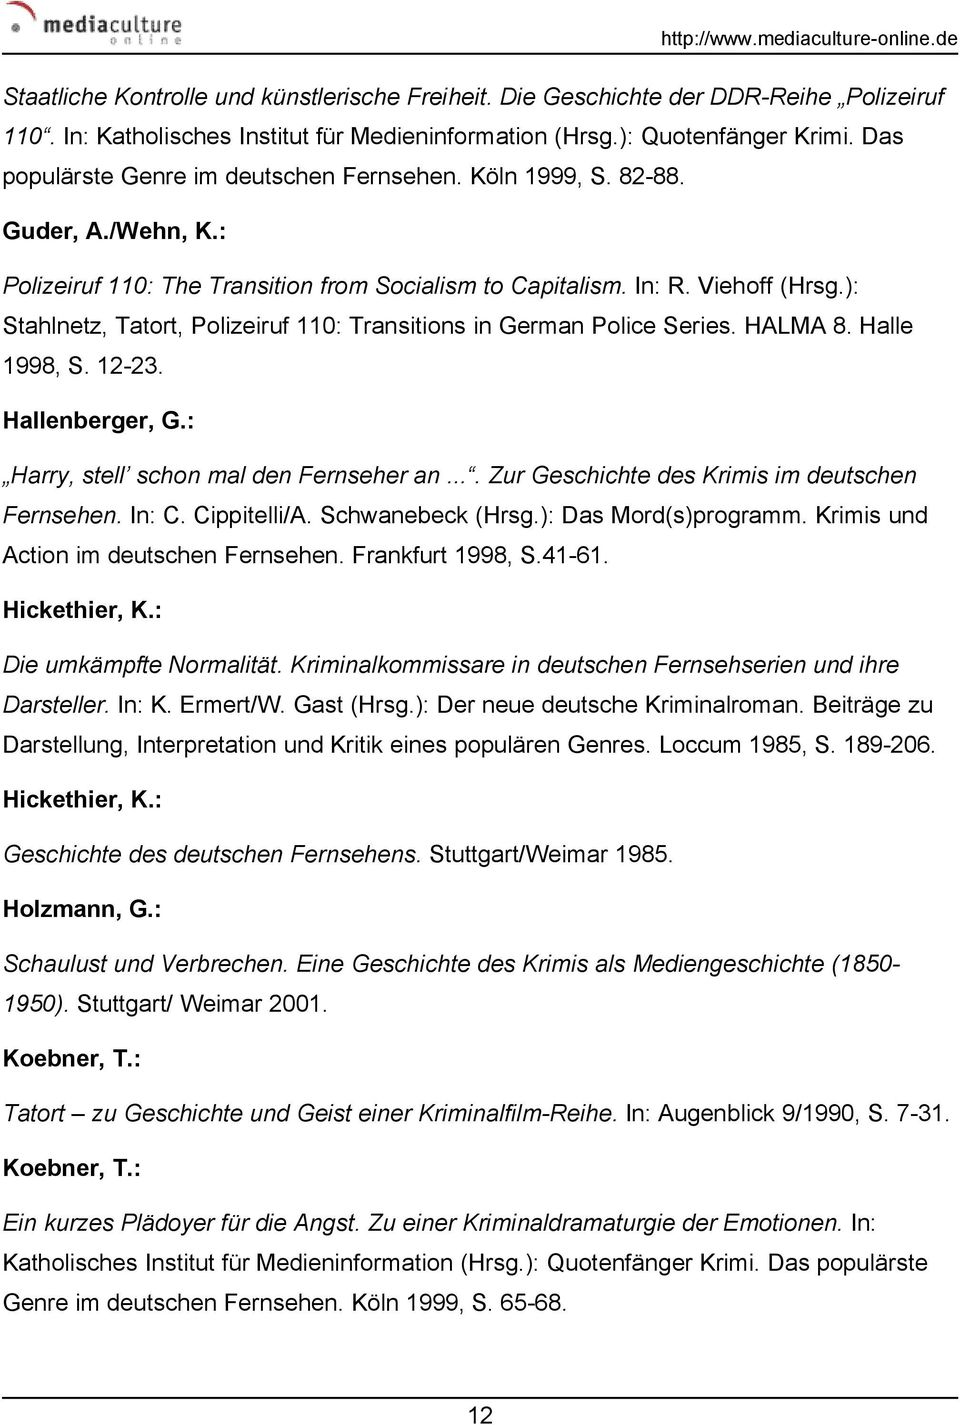 ): Stahlnetz, Tatort, Polizeiruf 110: Transitions in German Police Series. HALMA 8. Halle 1998, S. 12-23. Hallenberger, G.: Harry, stell schon mal den Fernseher an.